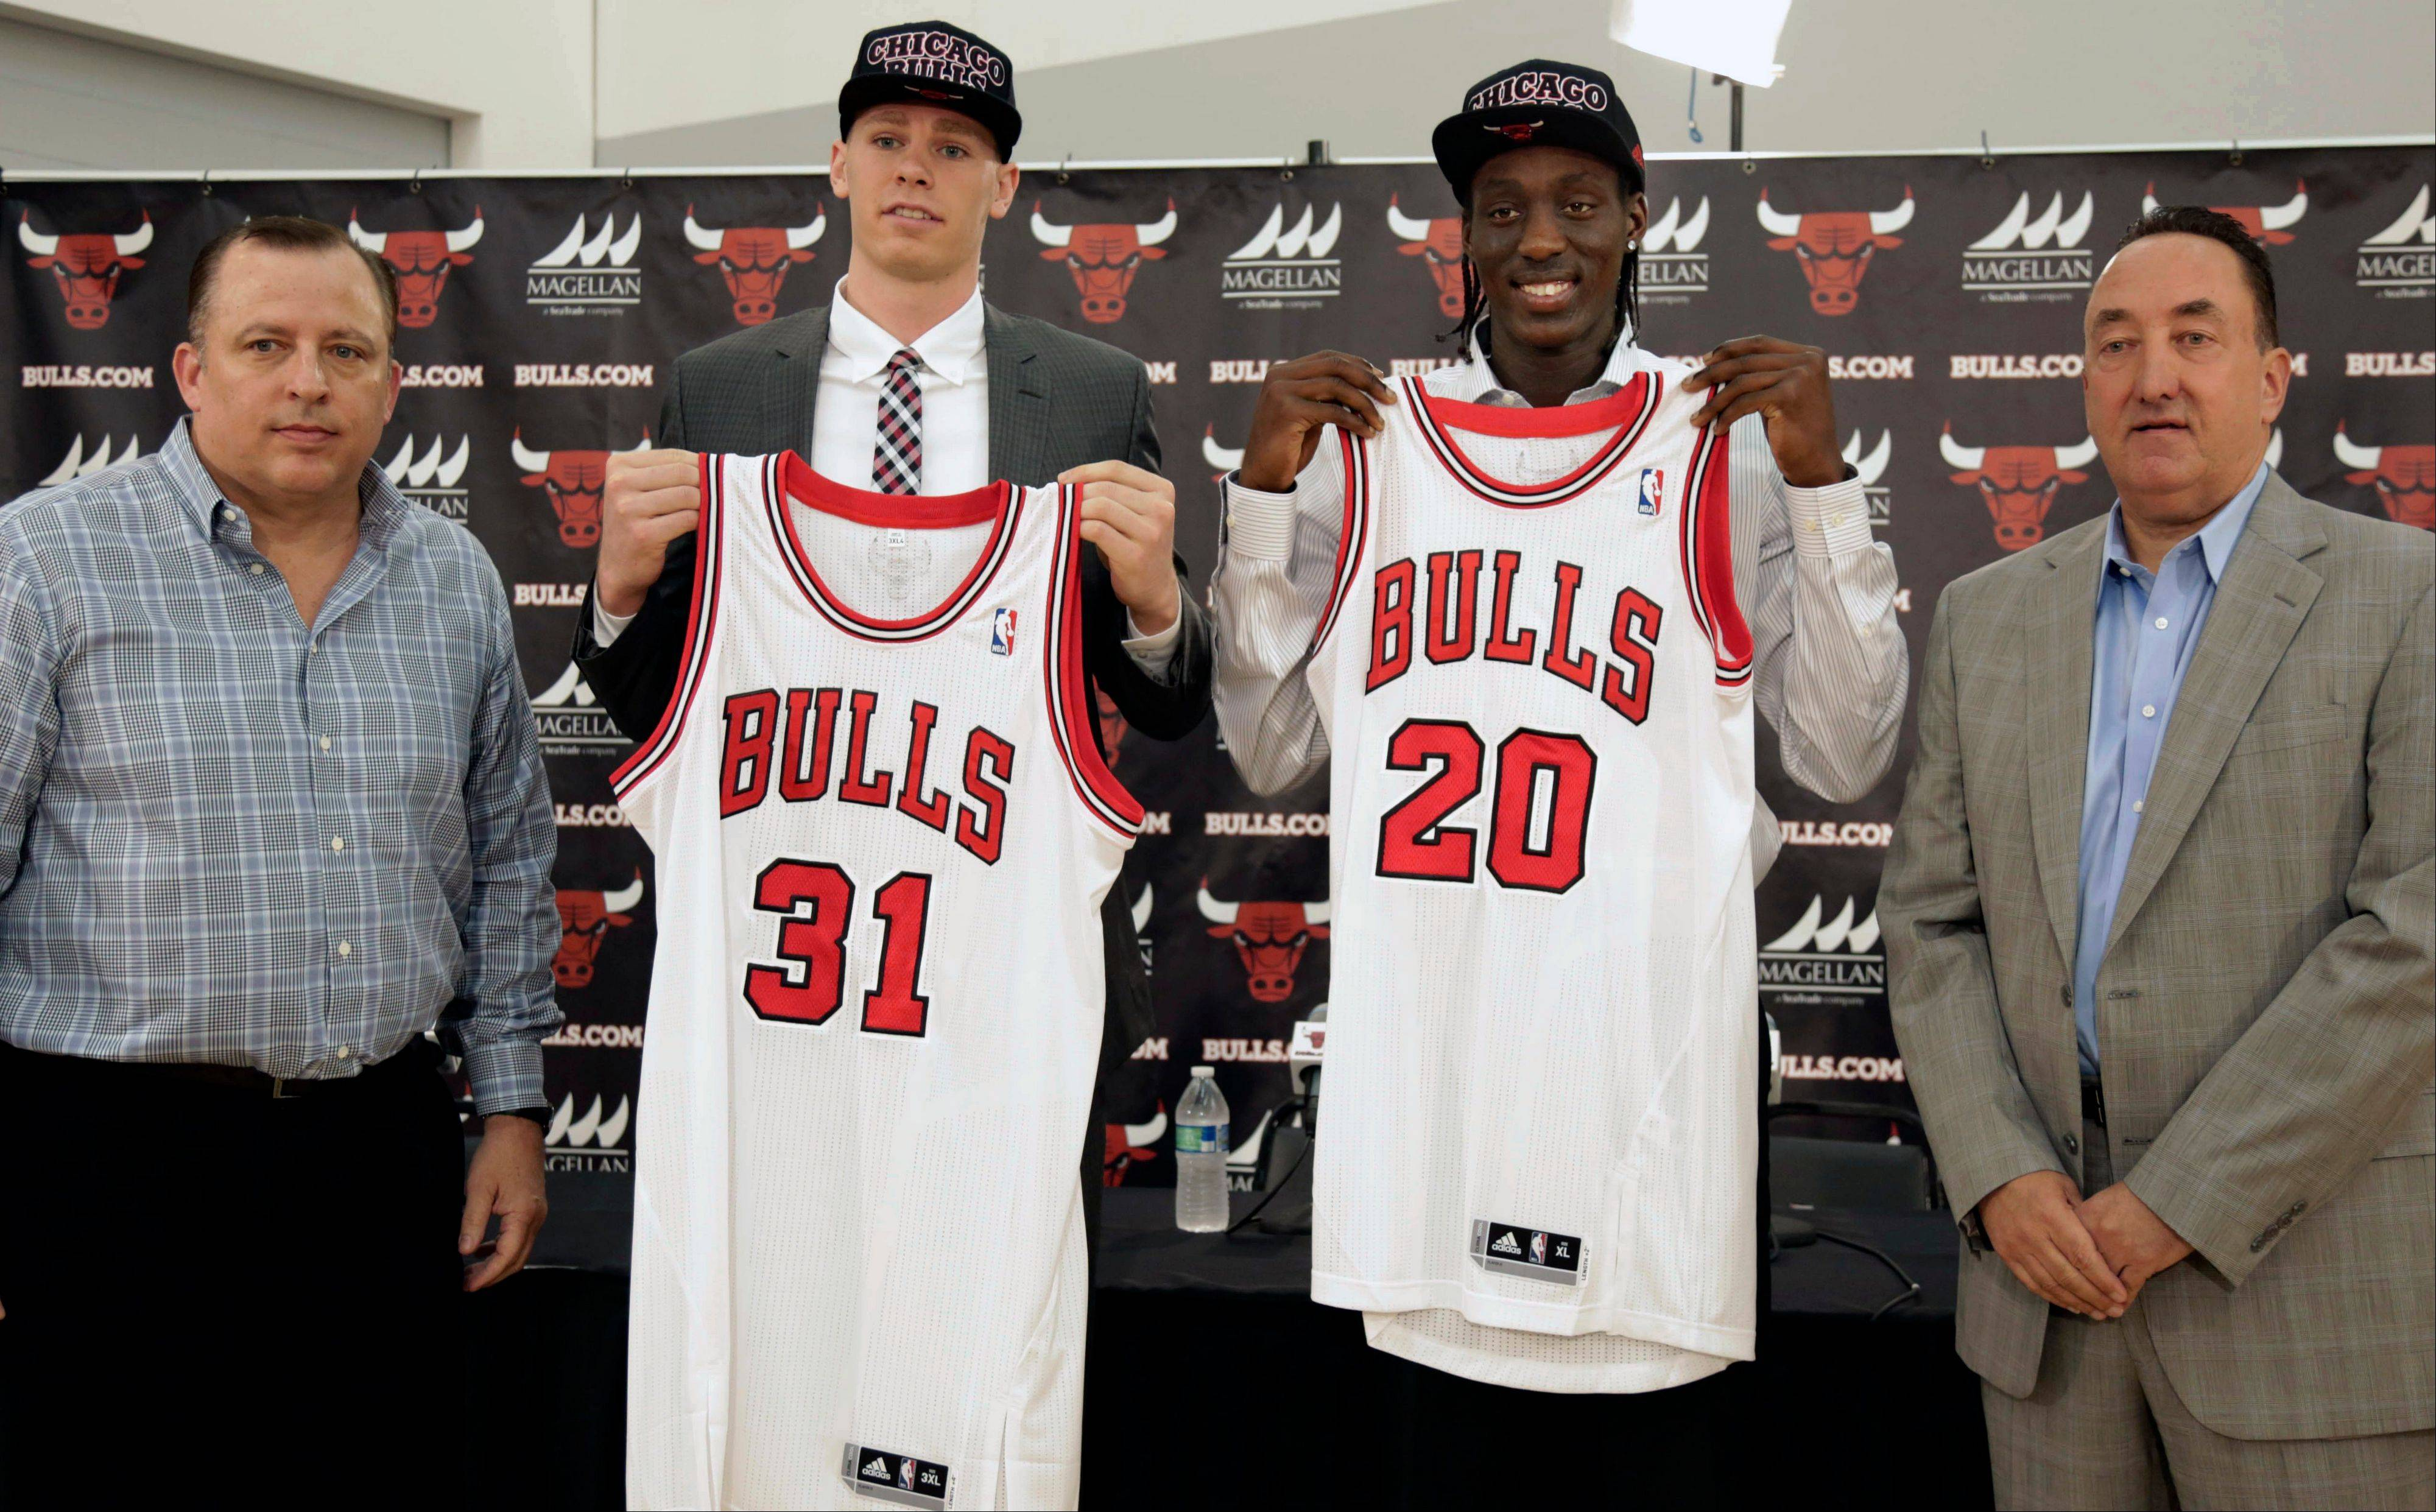 Bulls coach Tom Thibodeau, left, and general manager Gar Forman, right, introduce the team's 2013 draft picks -- Erik Murphy (31) and Tony Snell (20) -- at the Berto Center on Monday.